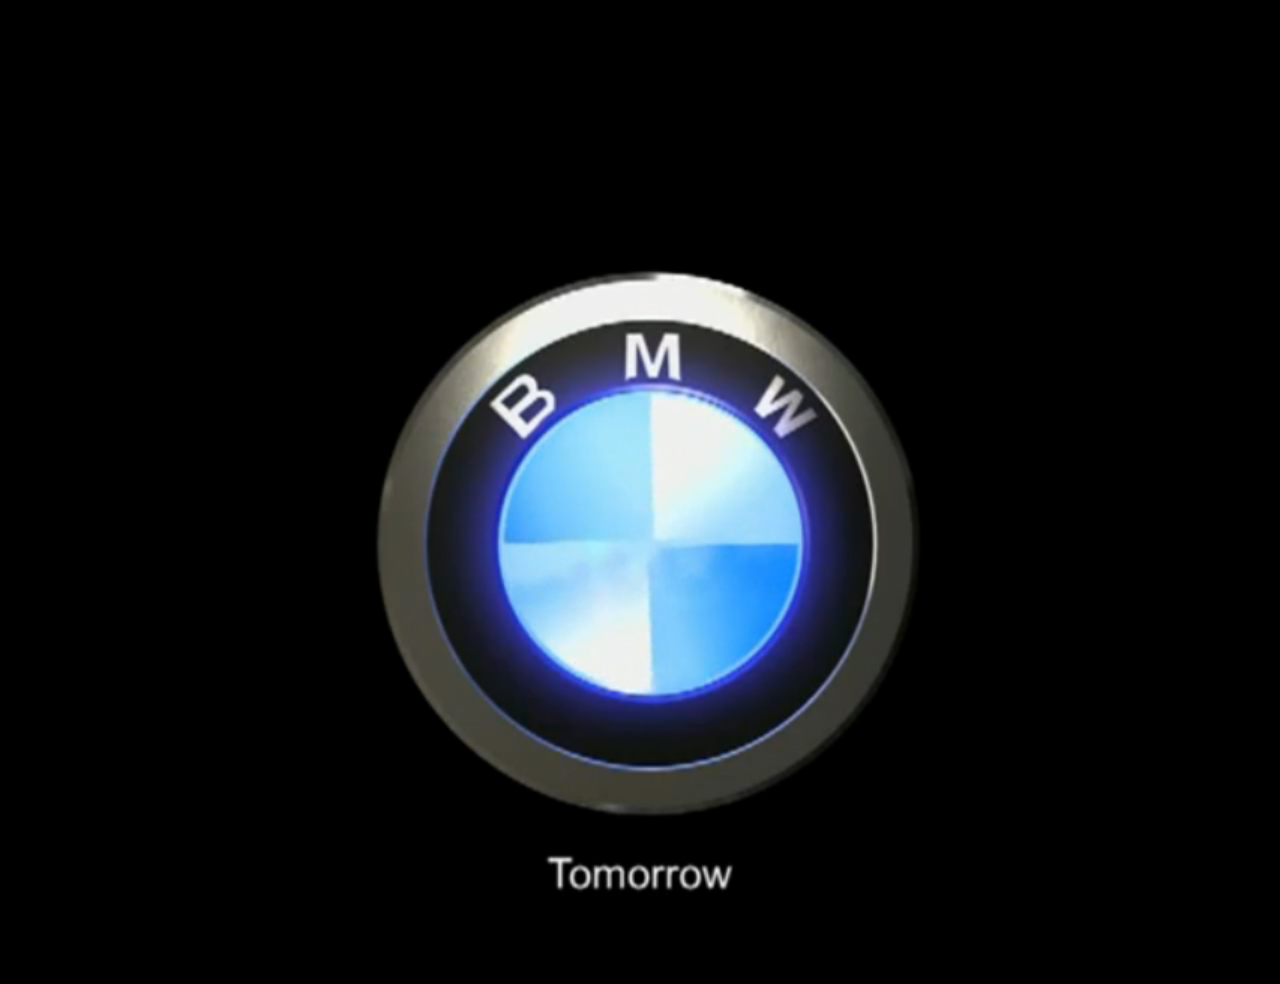 Free Download Bmw Logo 1280x984 For Your Desktop Mobile